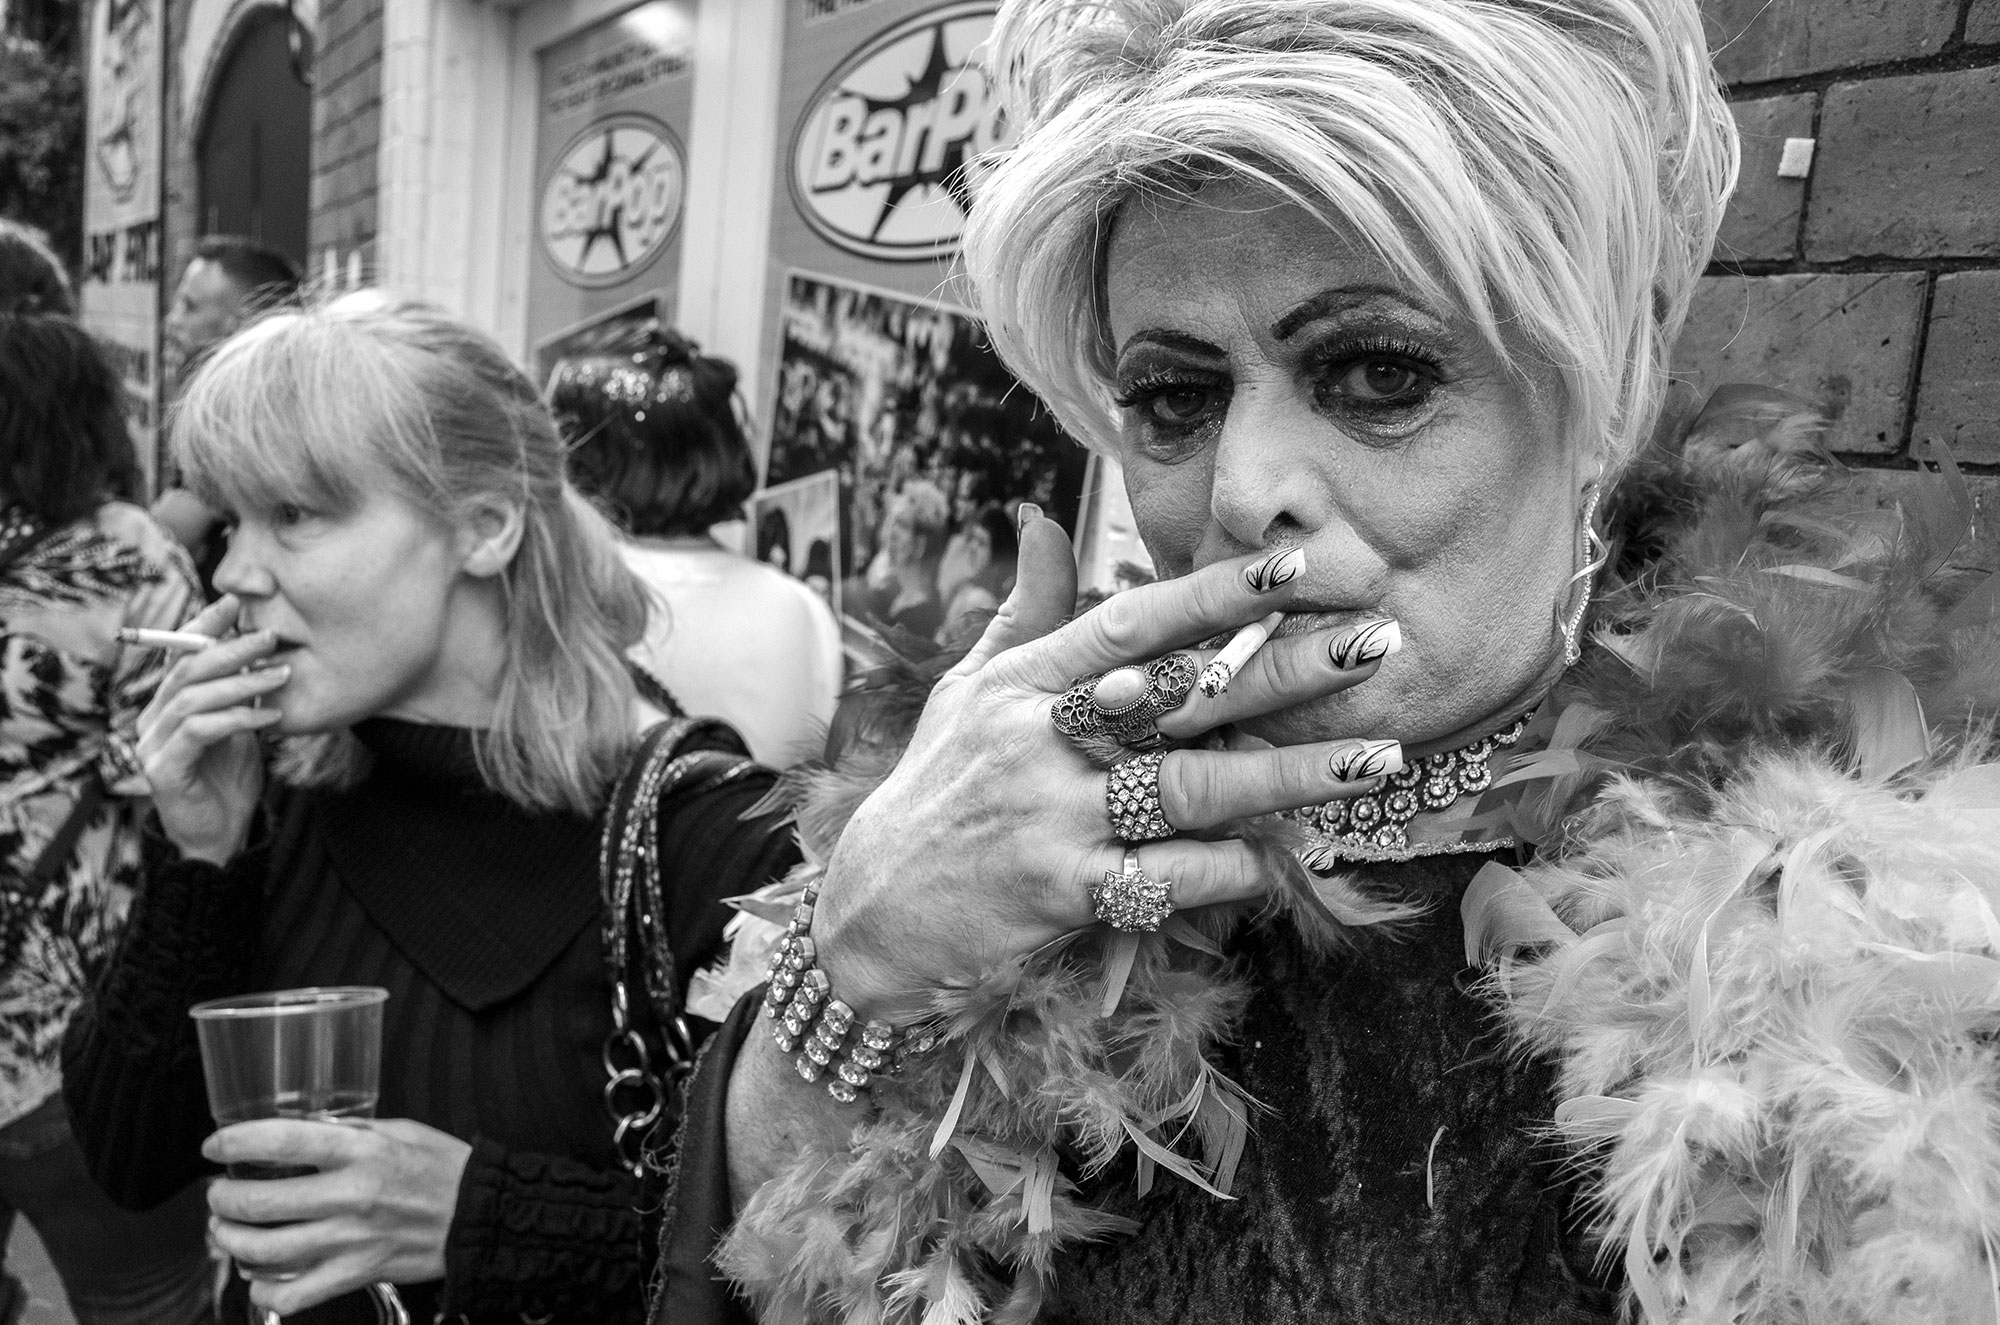 Welcome to street photography